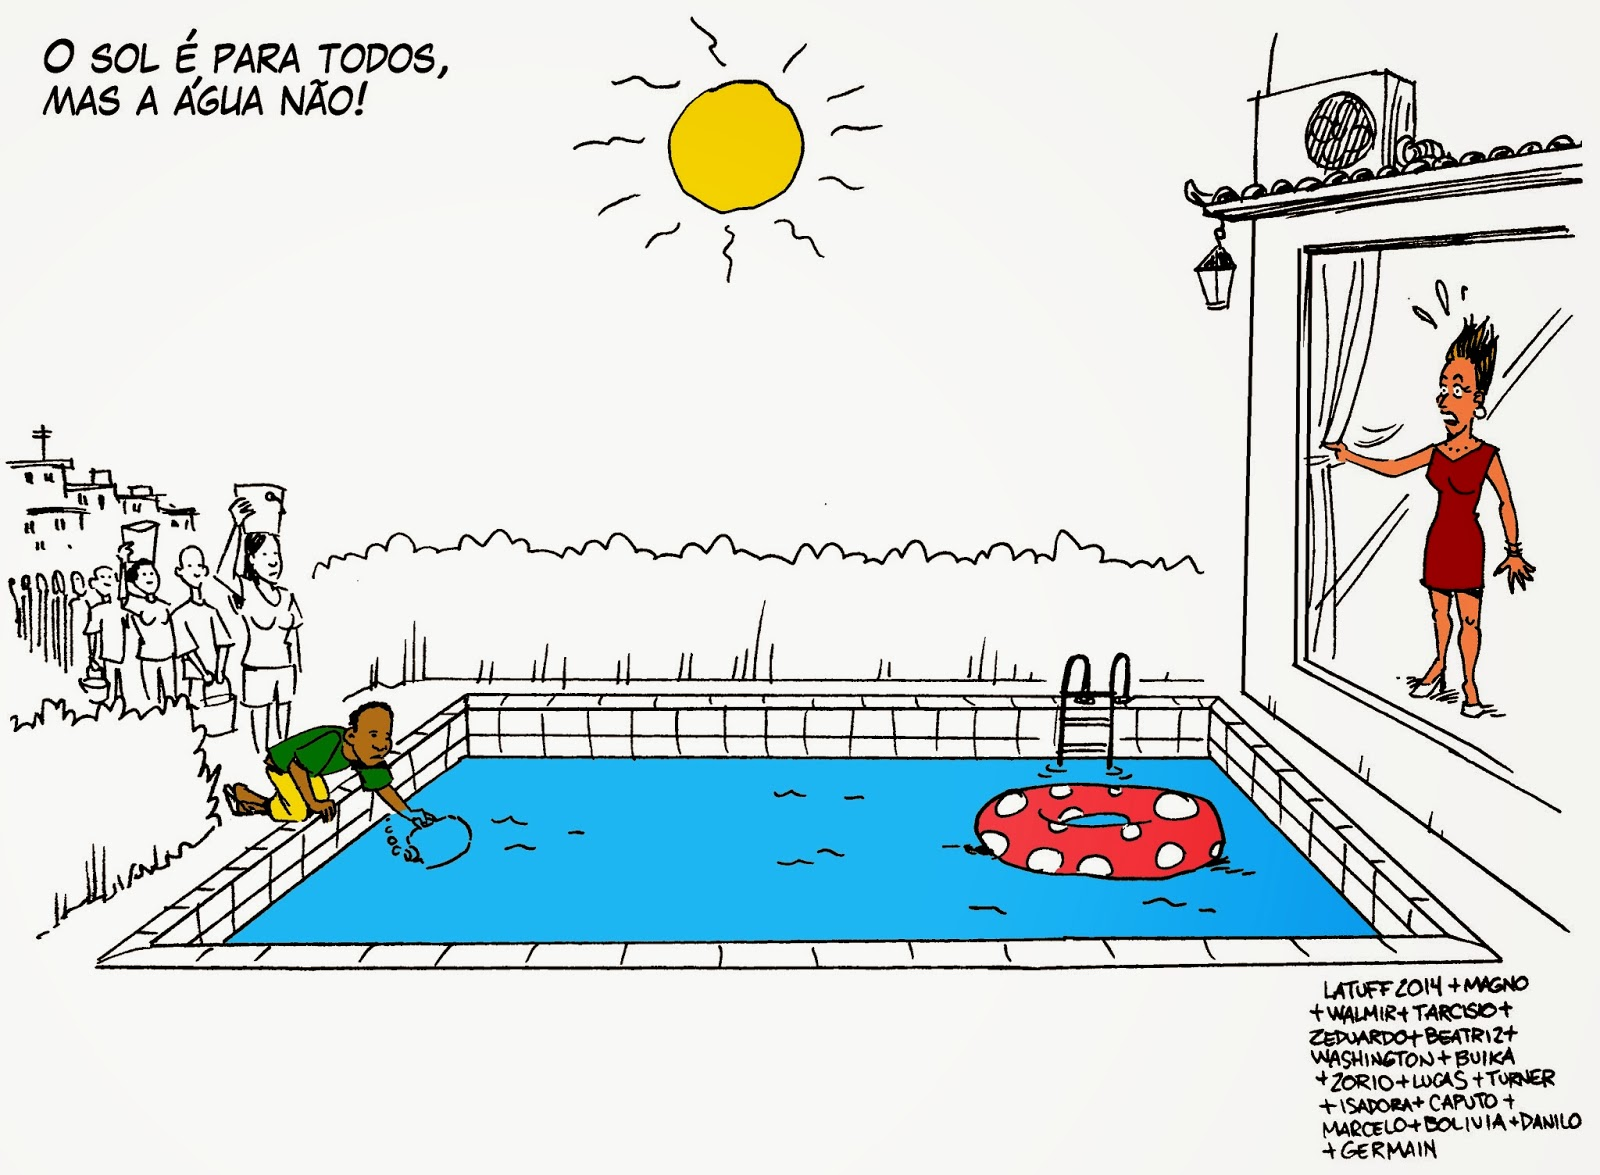 Latuff: The sun is for everone, but the water, no!